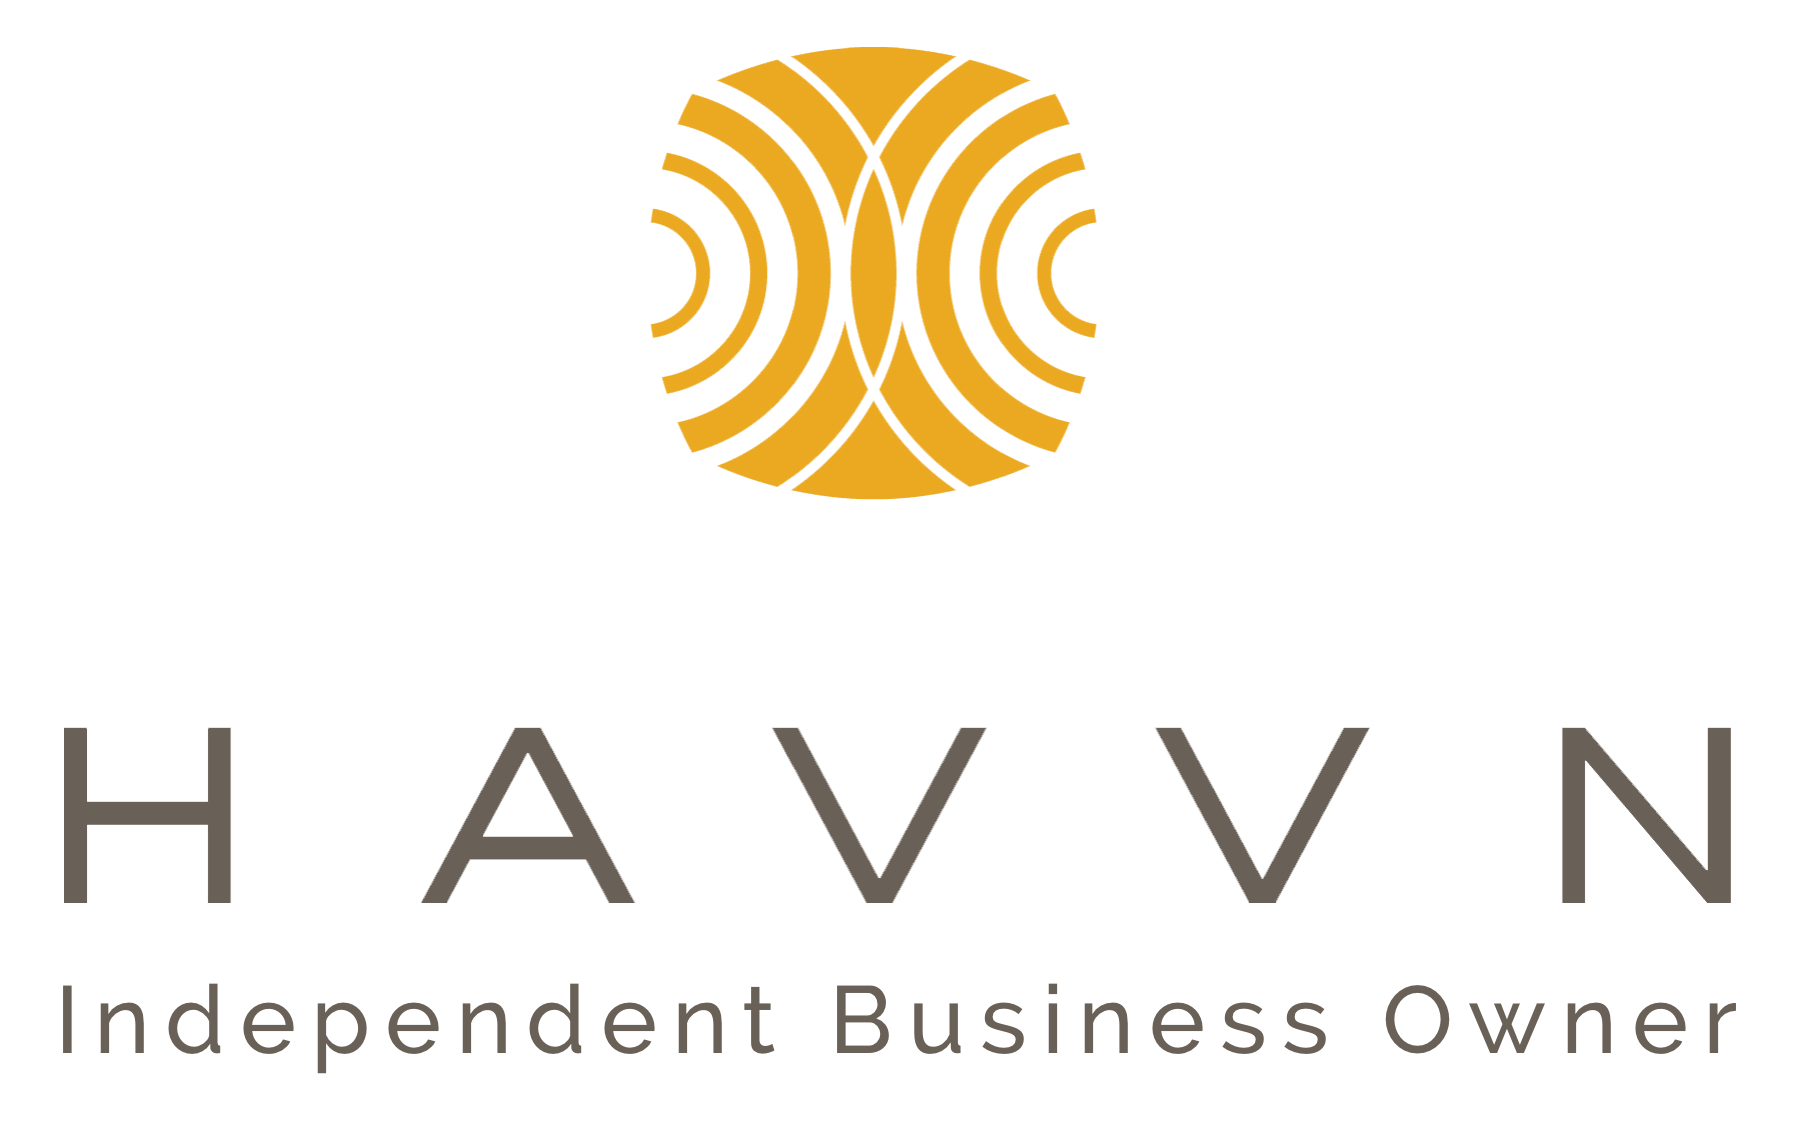 Havvn Independent Business Owner Logo